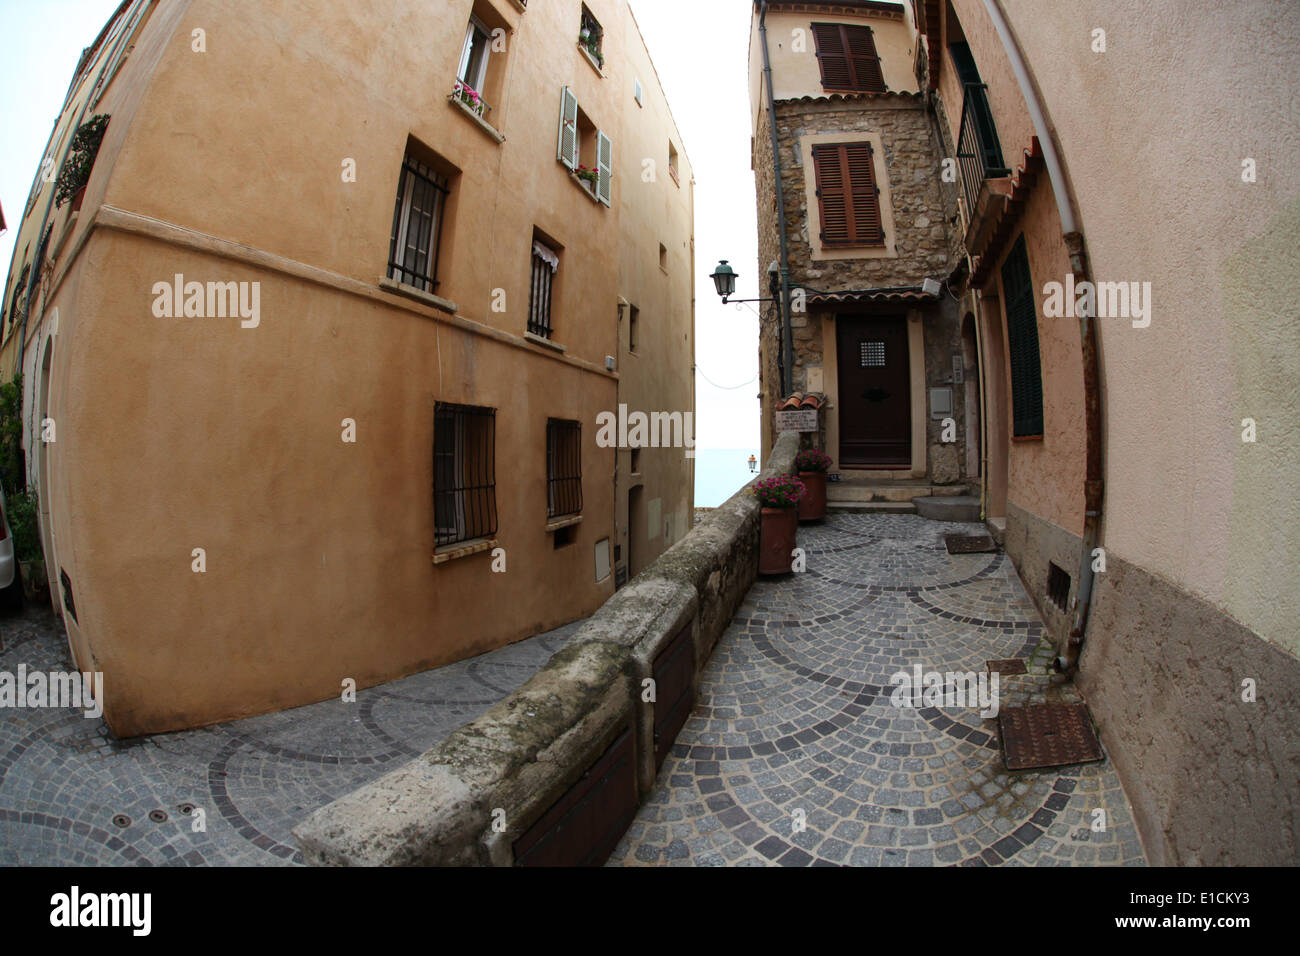 Cobbled stones lining the pathways and alleys of Saint-Paul-de-Vence - Stock Image